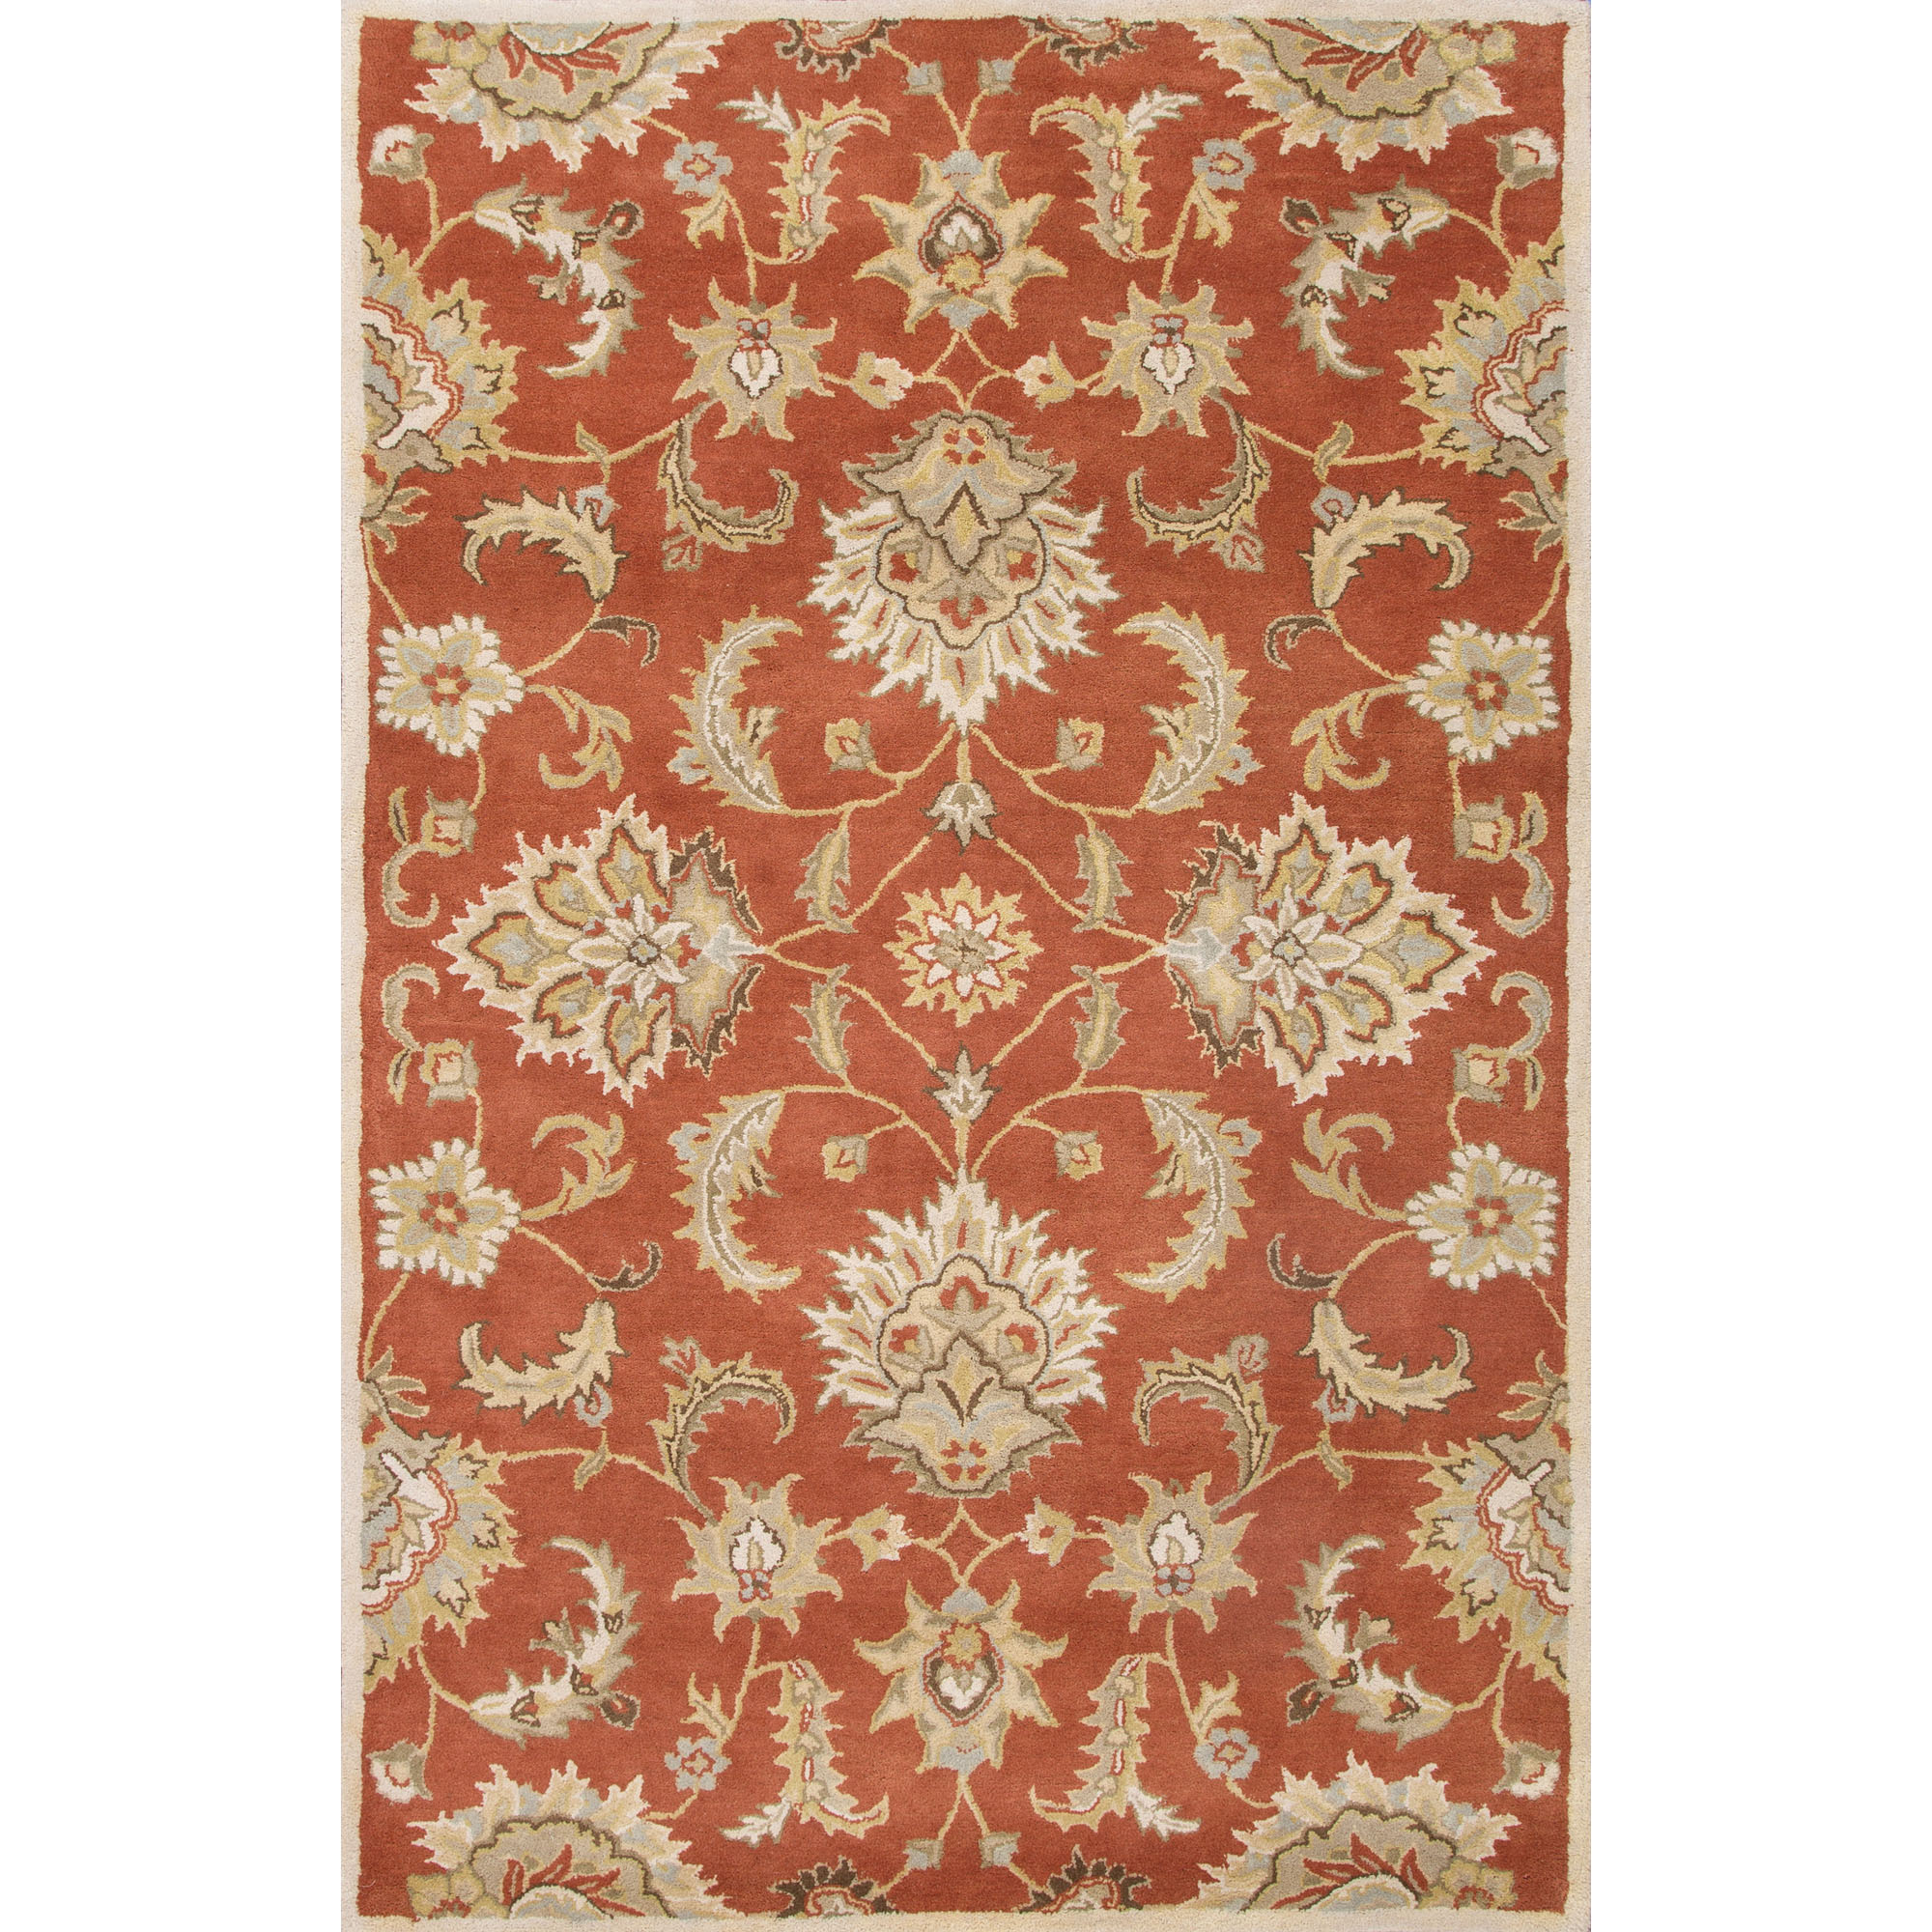 Mythos 12 x 15 Rug by JAIPUR Living at Malouf Furniture Co.